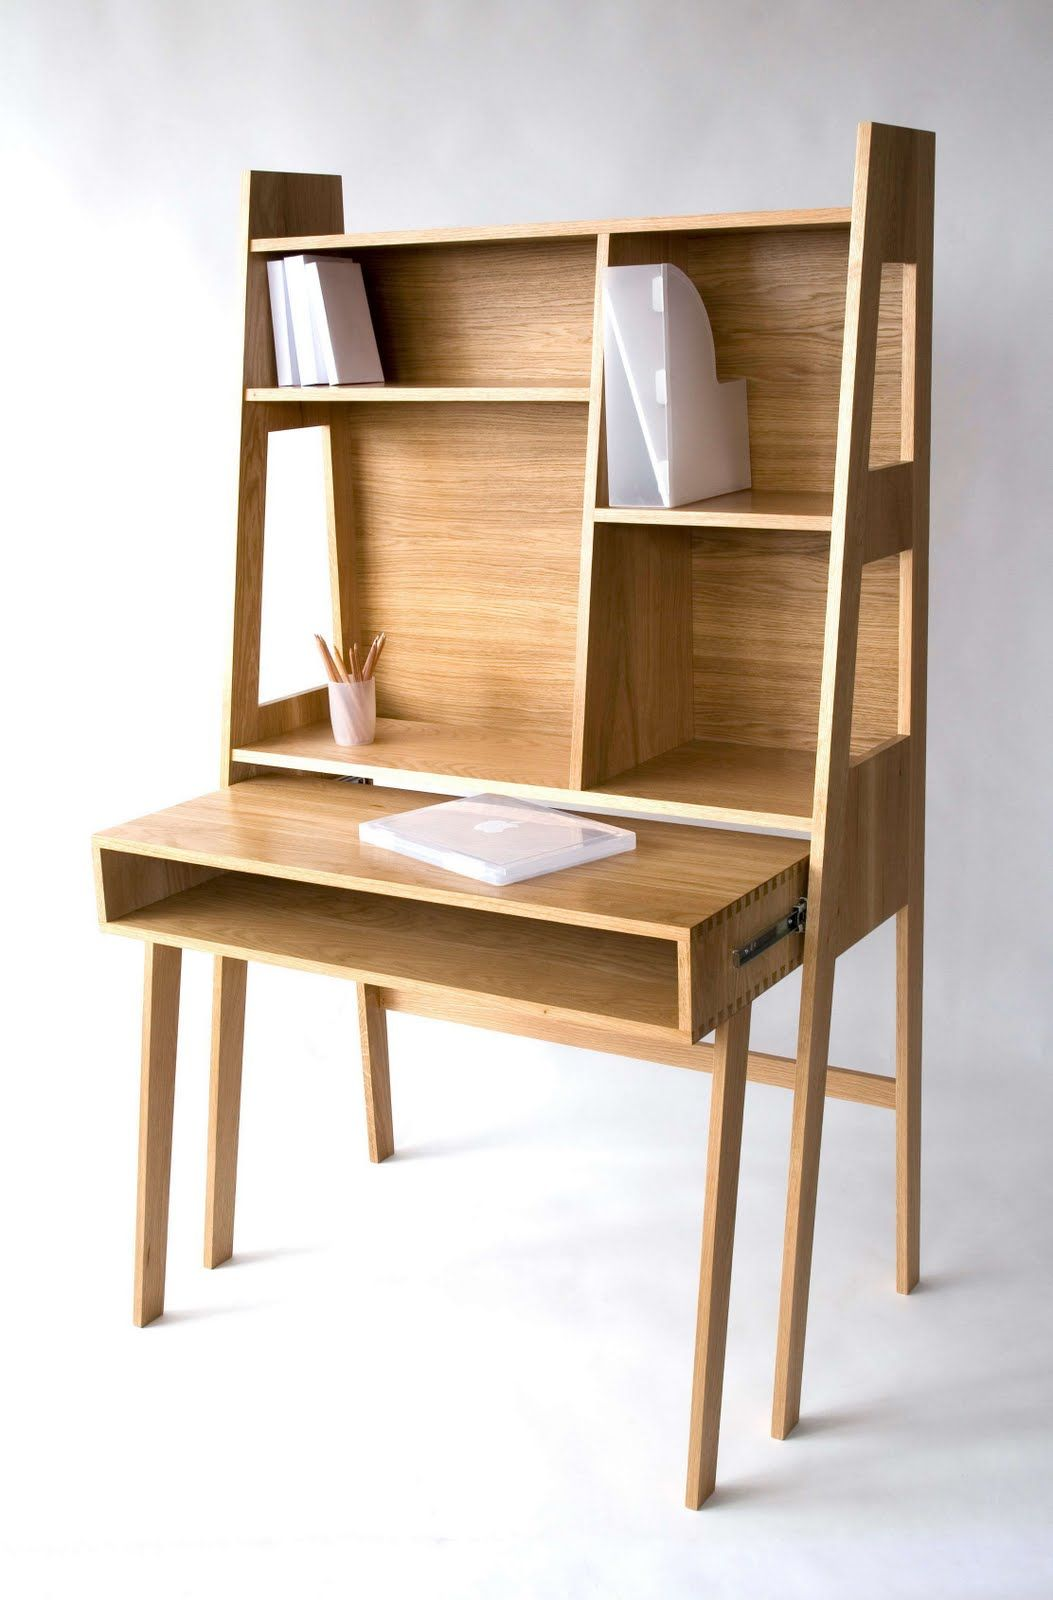 Sekretär Modern Retro Bureau By Designer Robert Maciejasz Of Kokon Studio In